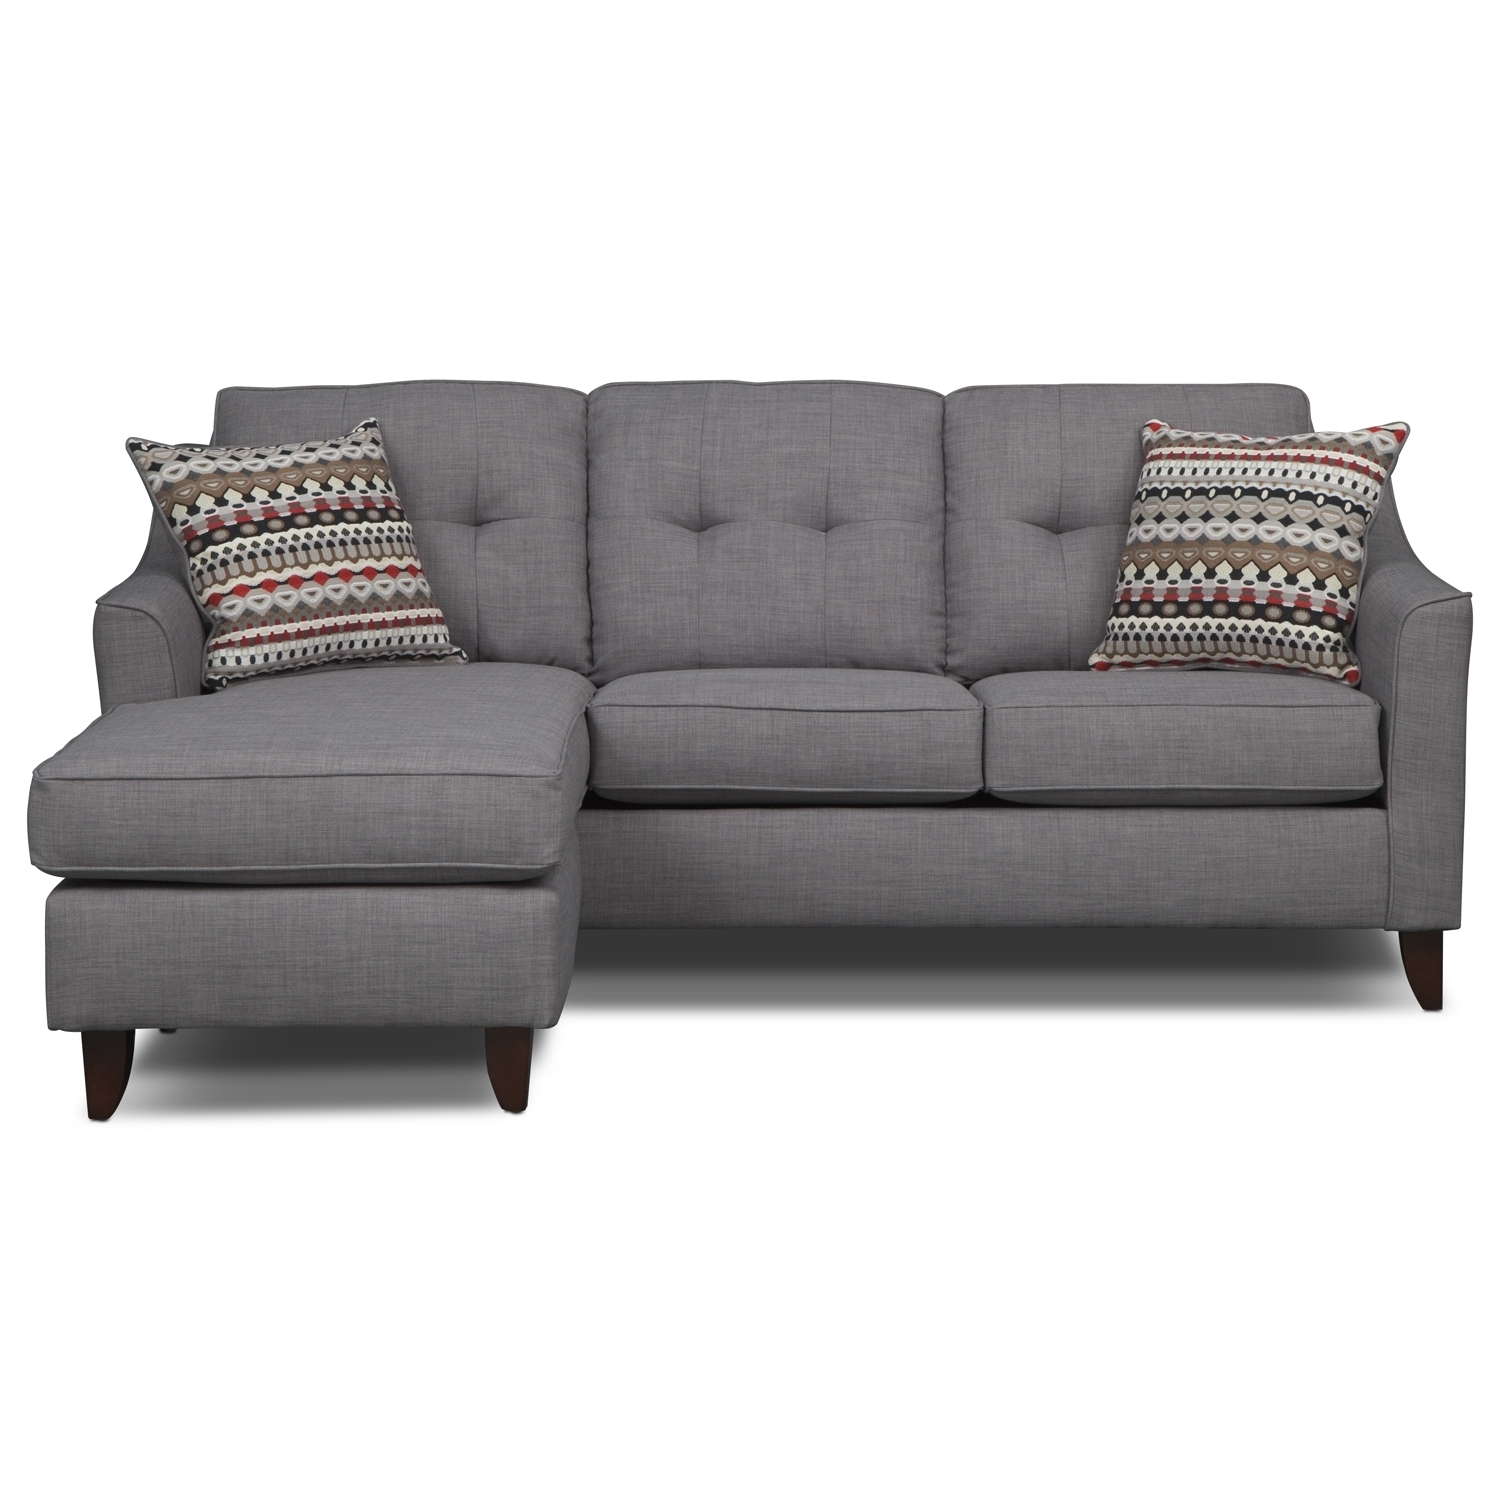 Couches With Chaise For 2017 Sofa: Unique Cheap Chaise Sofa Cheap Chaise Lounge, Couches Ikea (View 3 of 15)